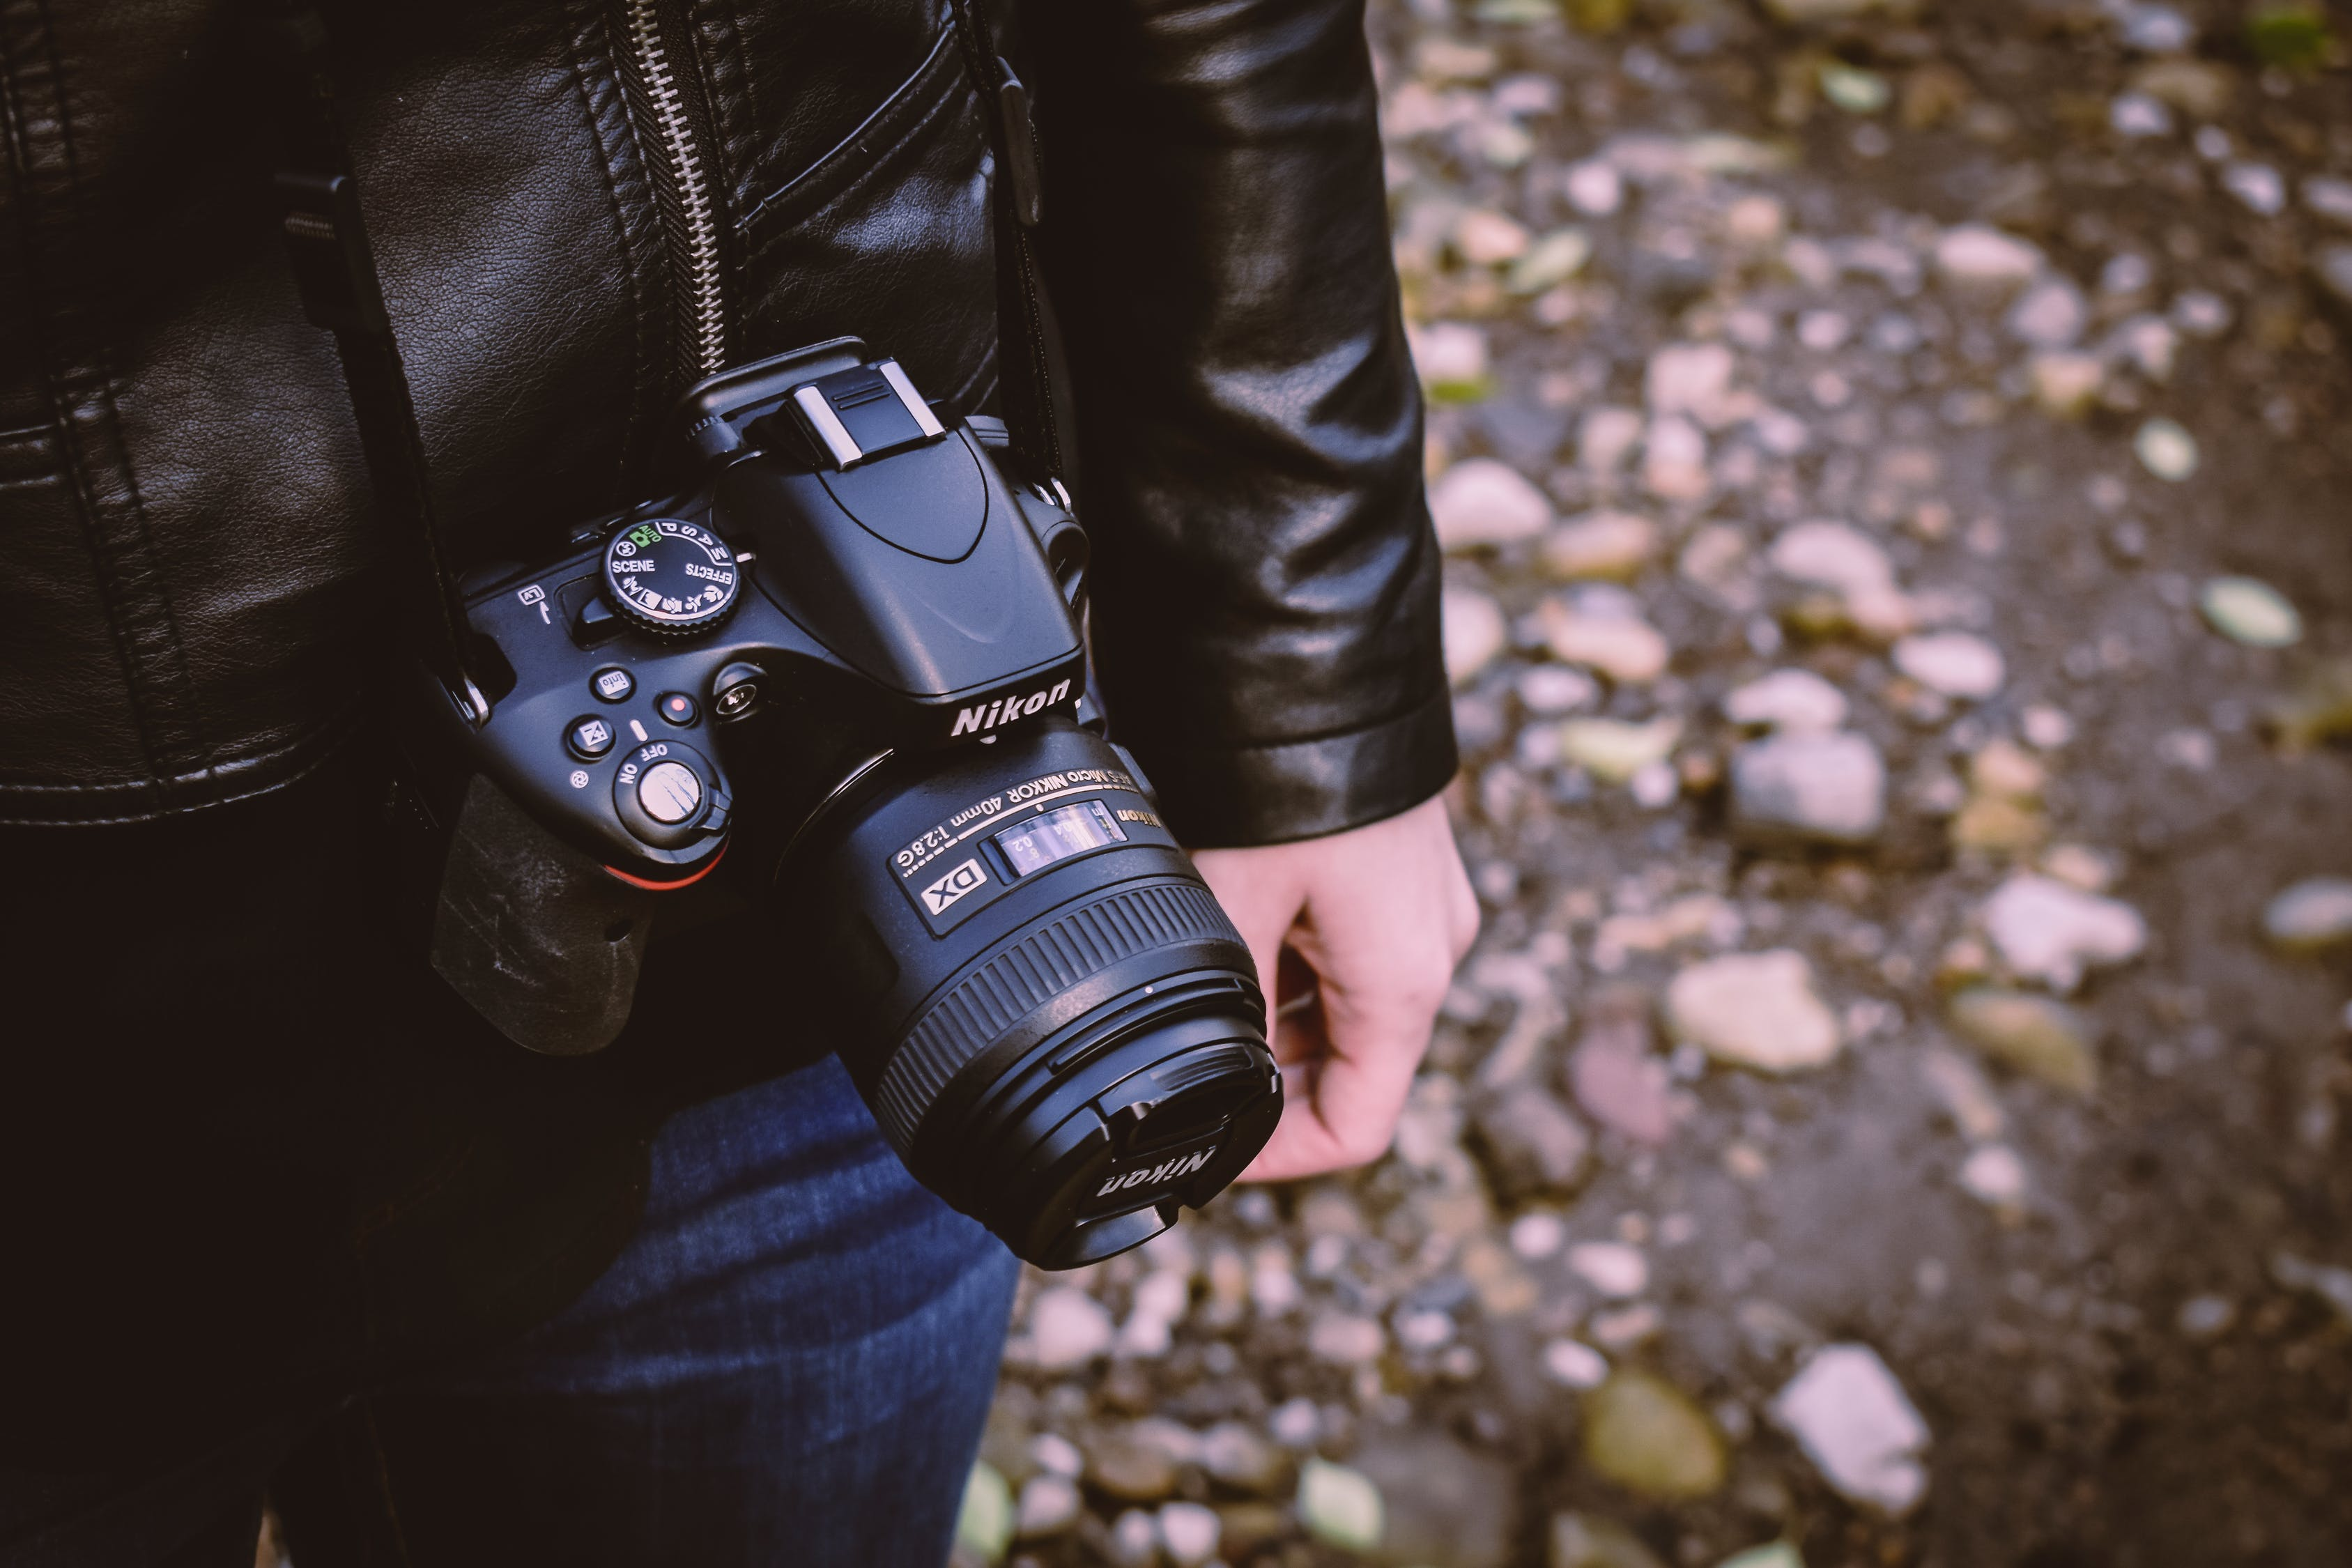 A person is carrying a nikon d5600 camera